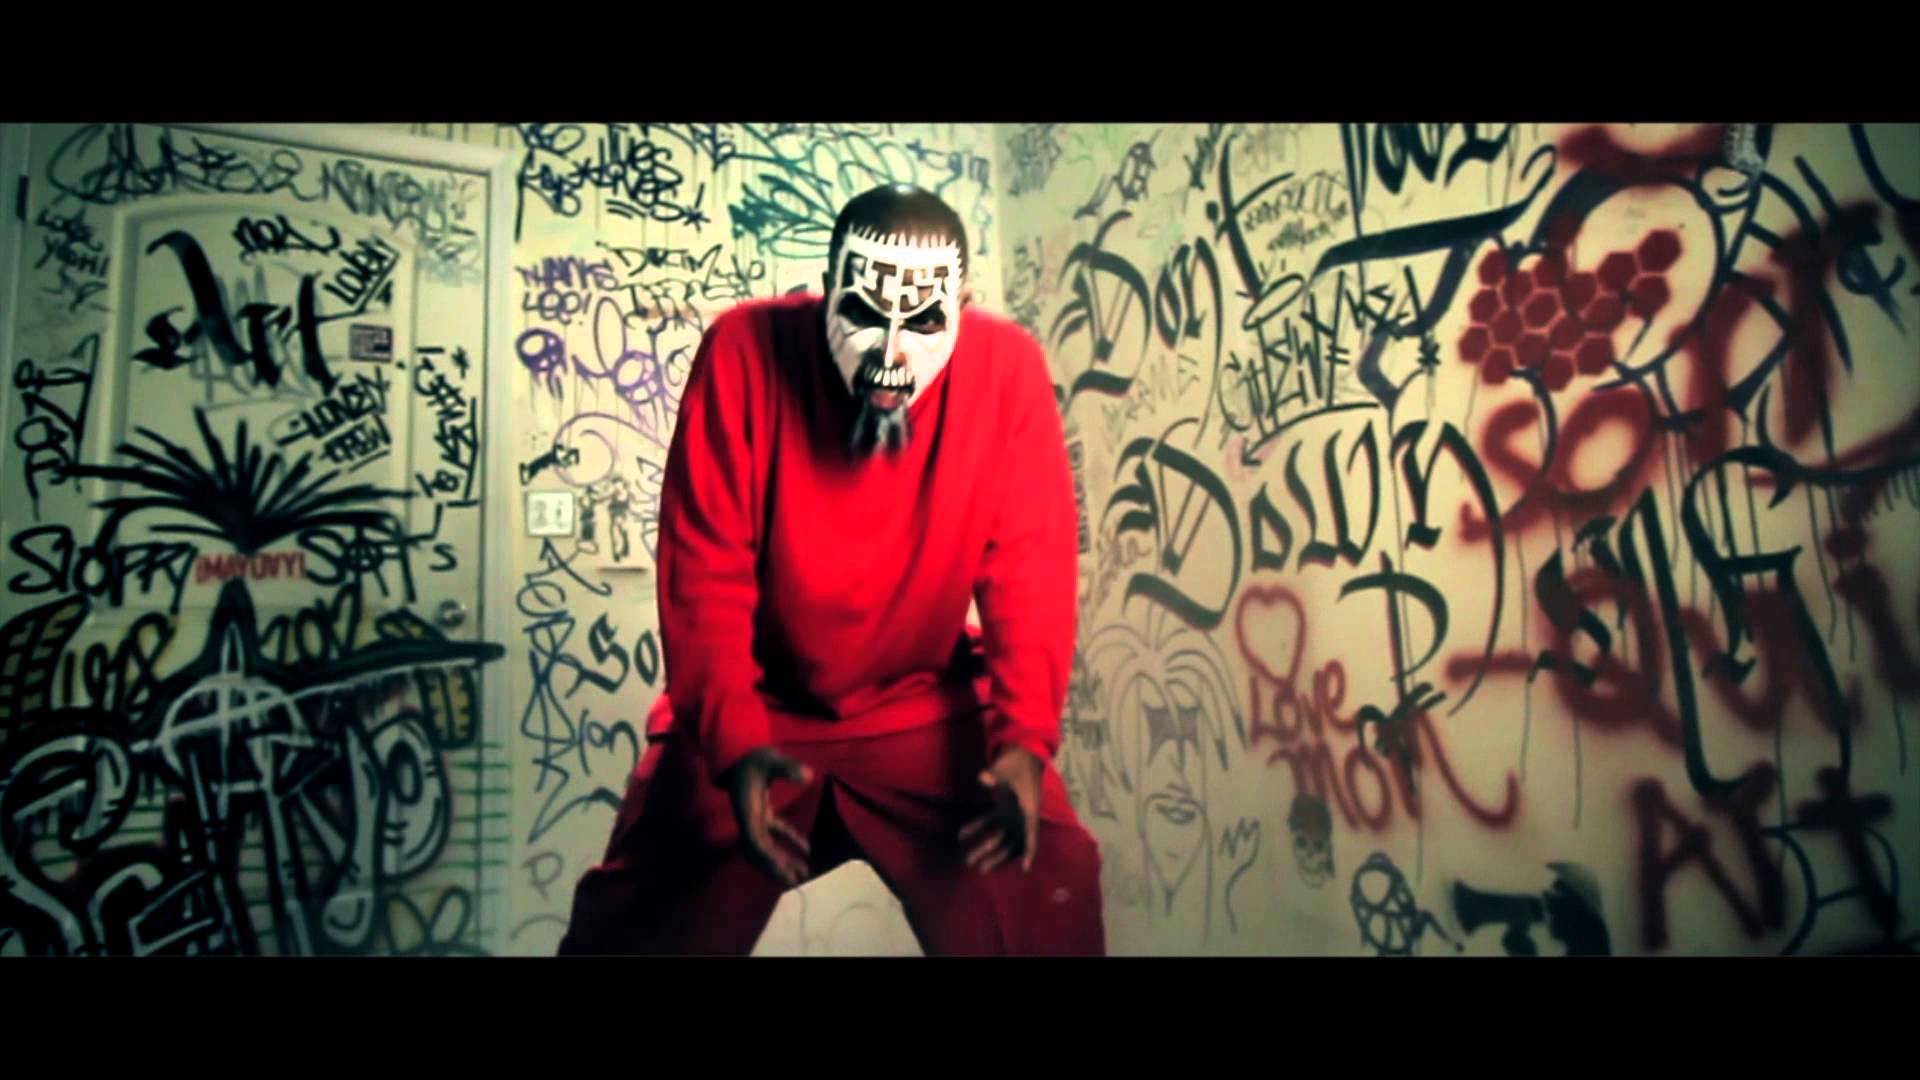 TECH N9NE gangsta rapper rap hip hop snoop snoop dog f wallpaper 1920x1080